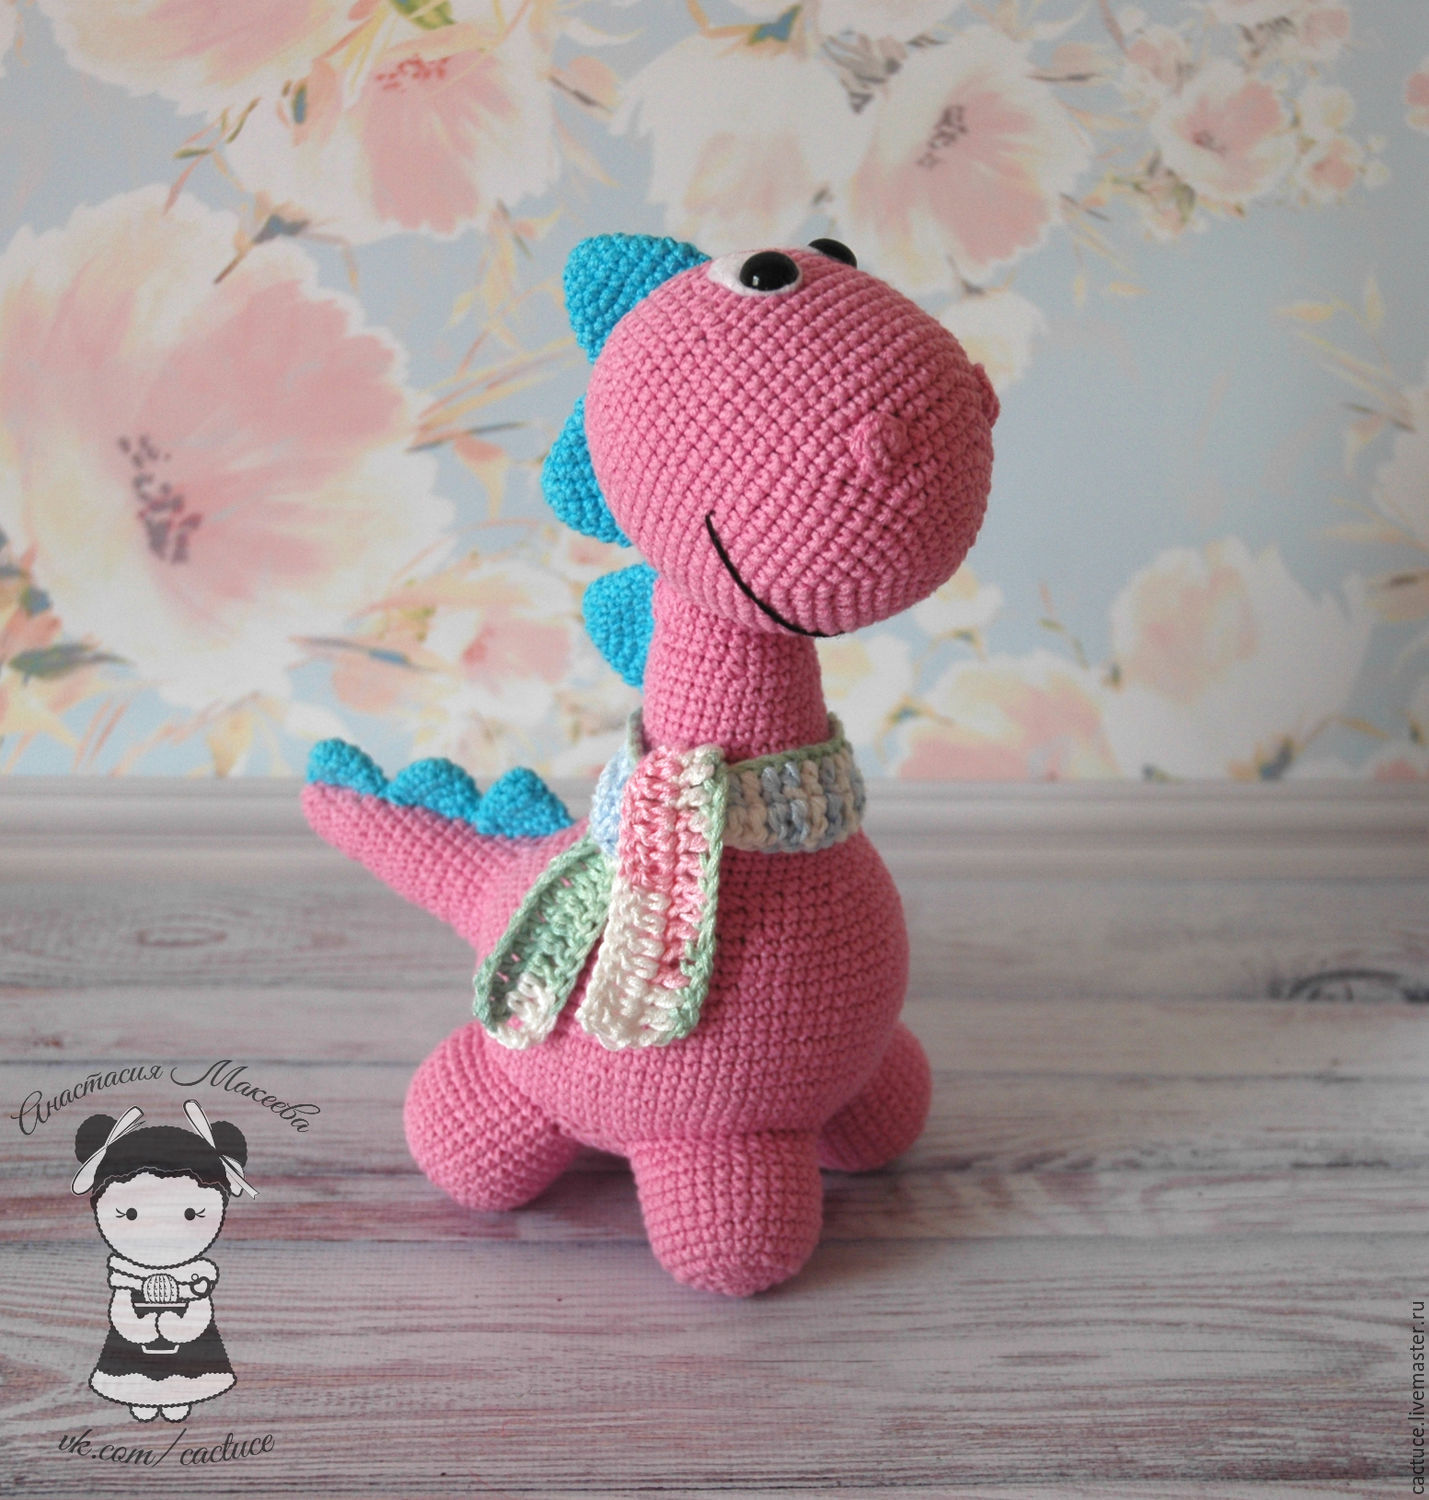 the toy dinosaur dylan – shop online on Livemaster with shipping